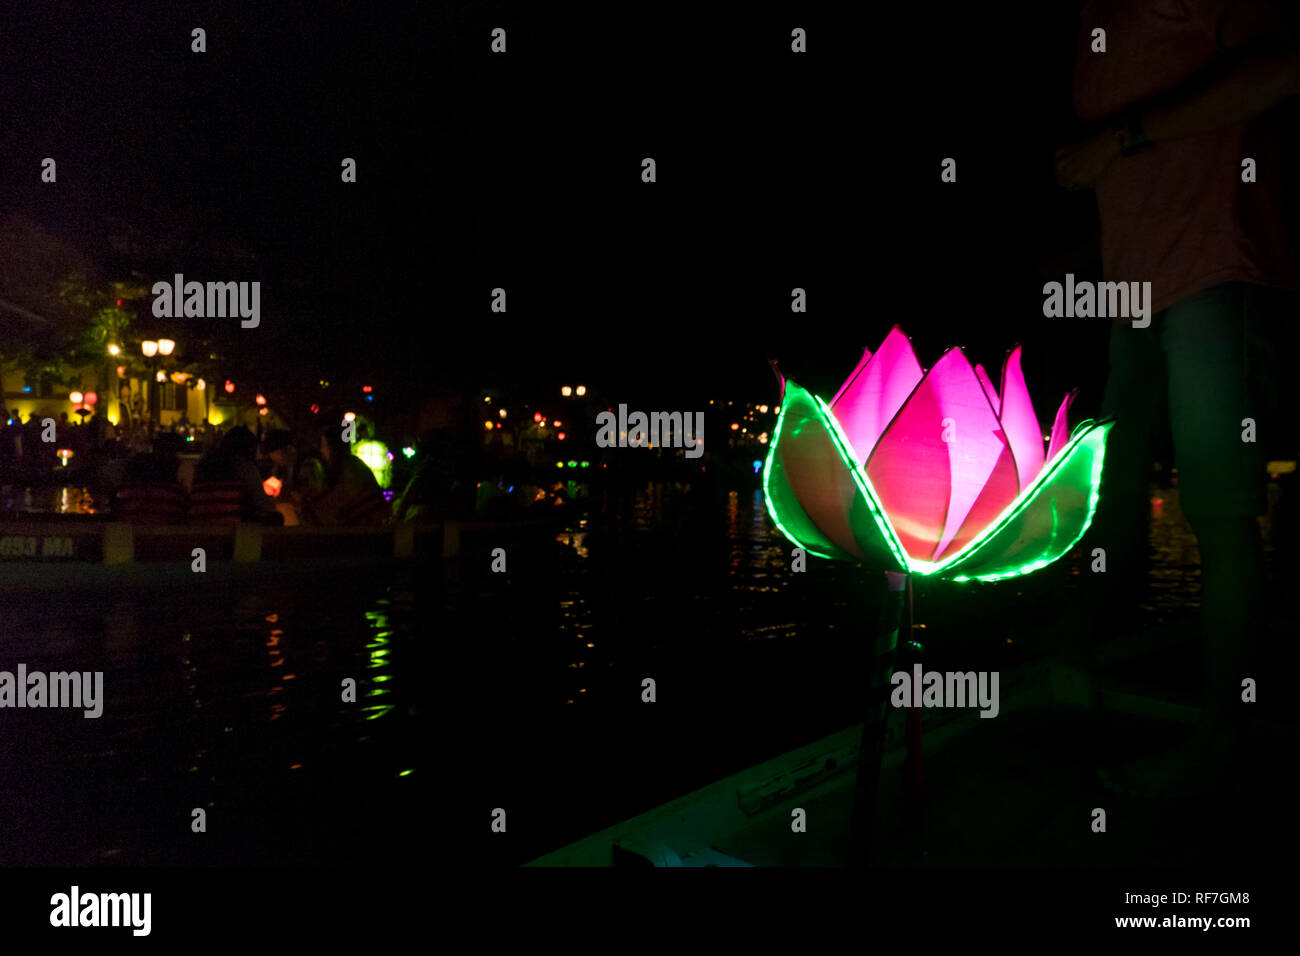 Boats drift along the lovely Thu Bon river as the night is lit by lanterns in Hoi An, Vietnam. - Stock Image